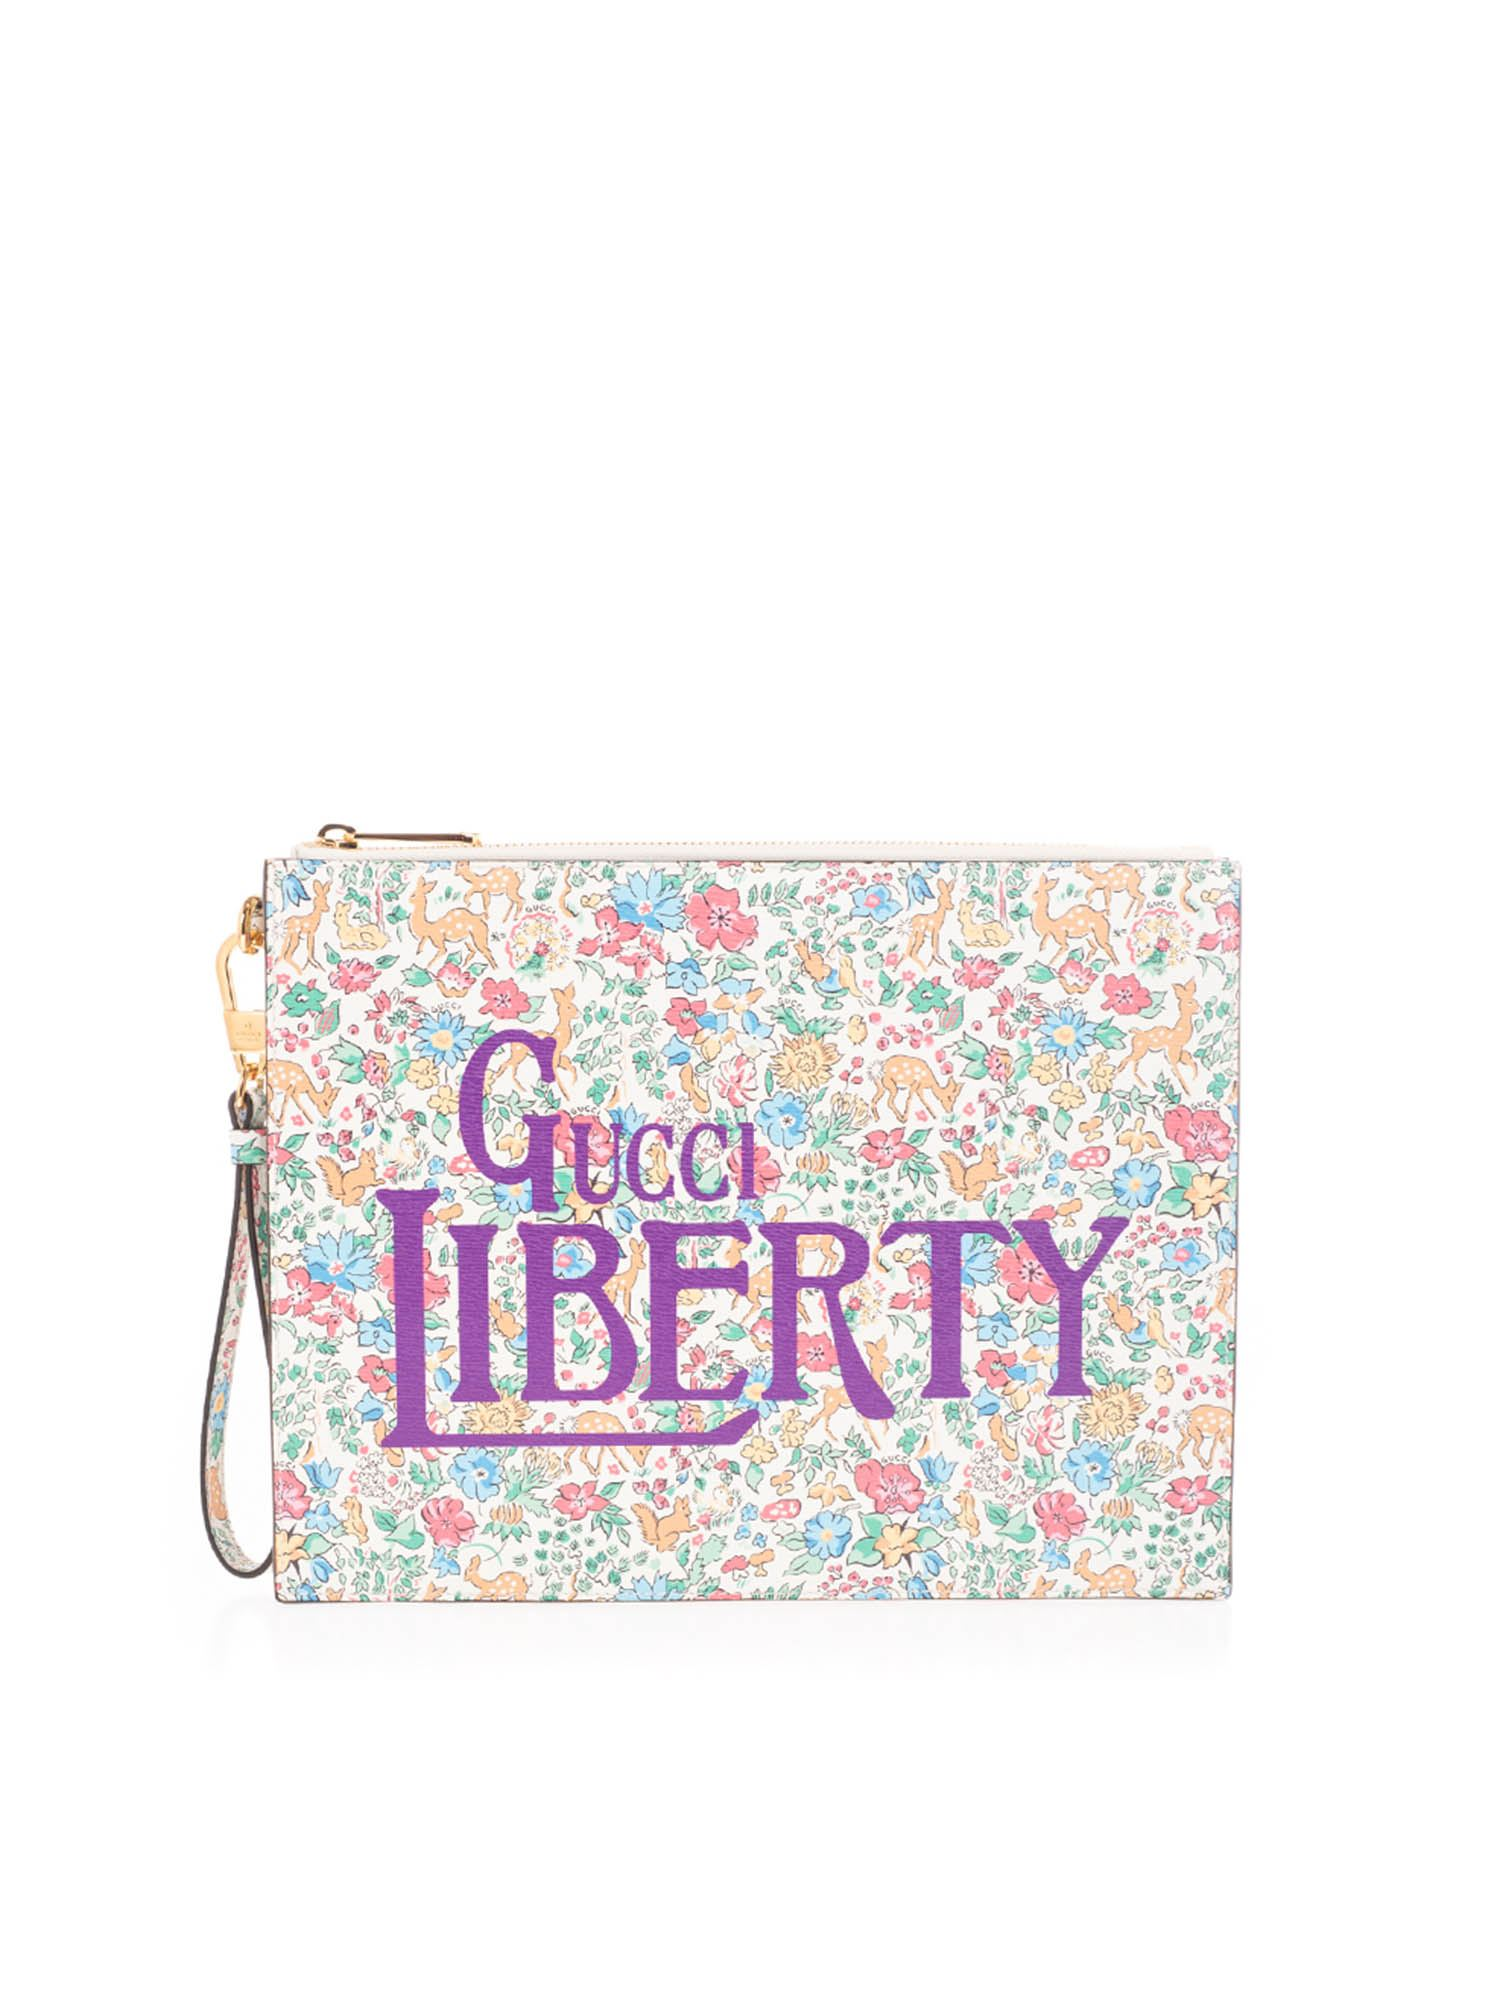 Gucci Leathers FLORAL PRINT CLUTCH IN MULTICOLOR